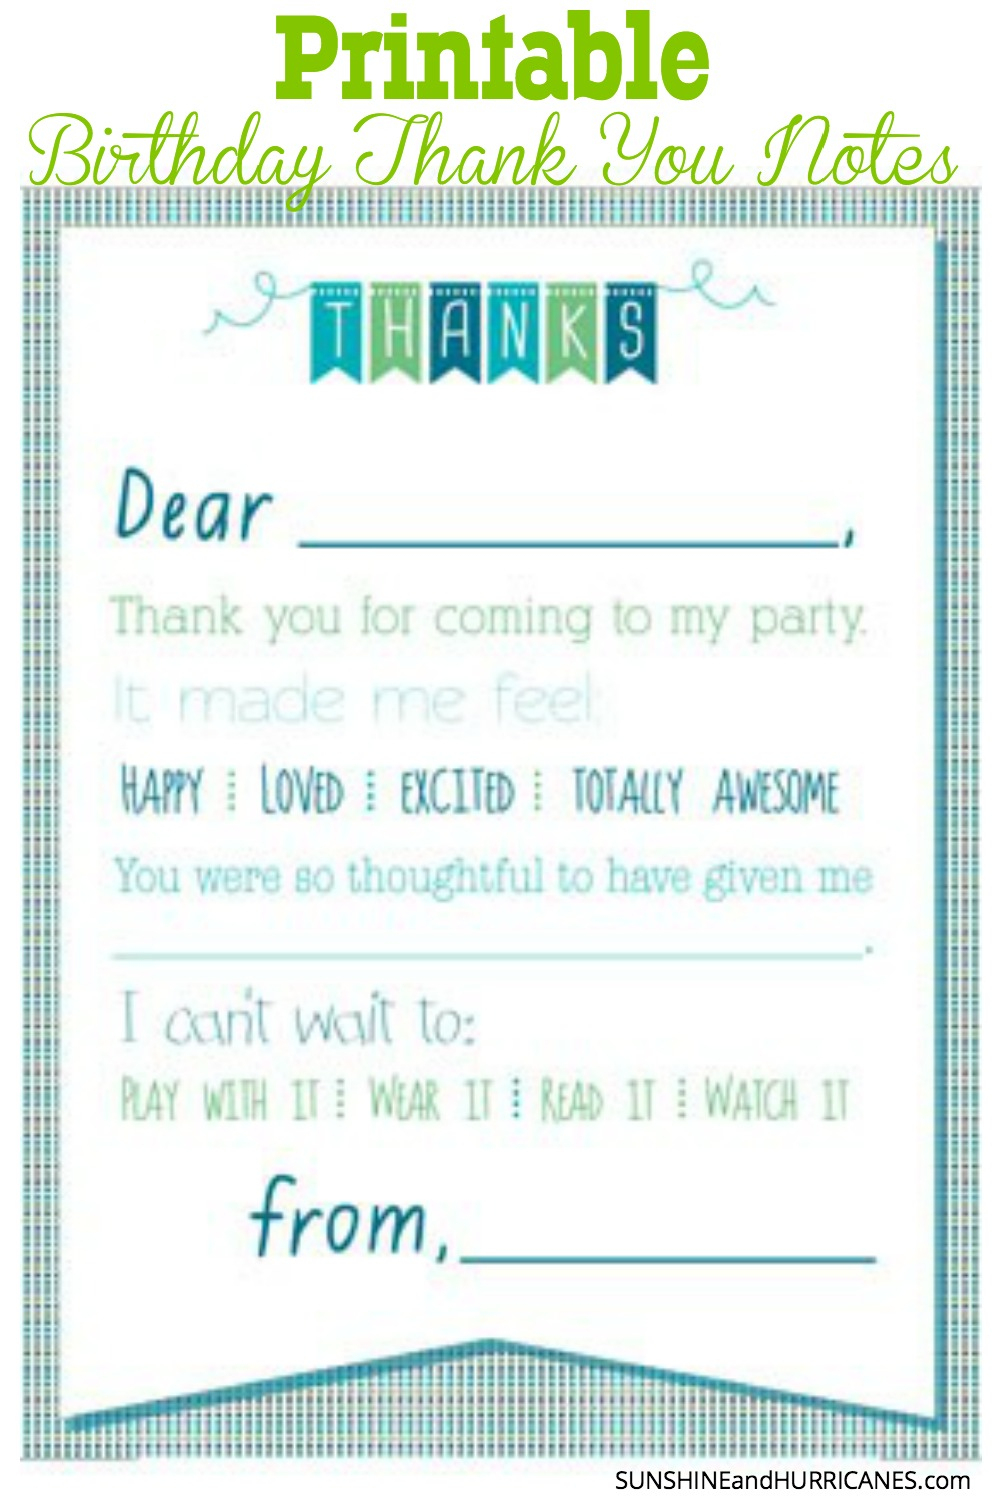 Printable Birthday Thank You Notes - Free Printable Soccer Thank You Cards